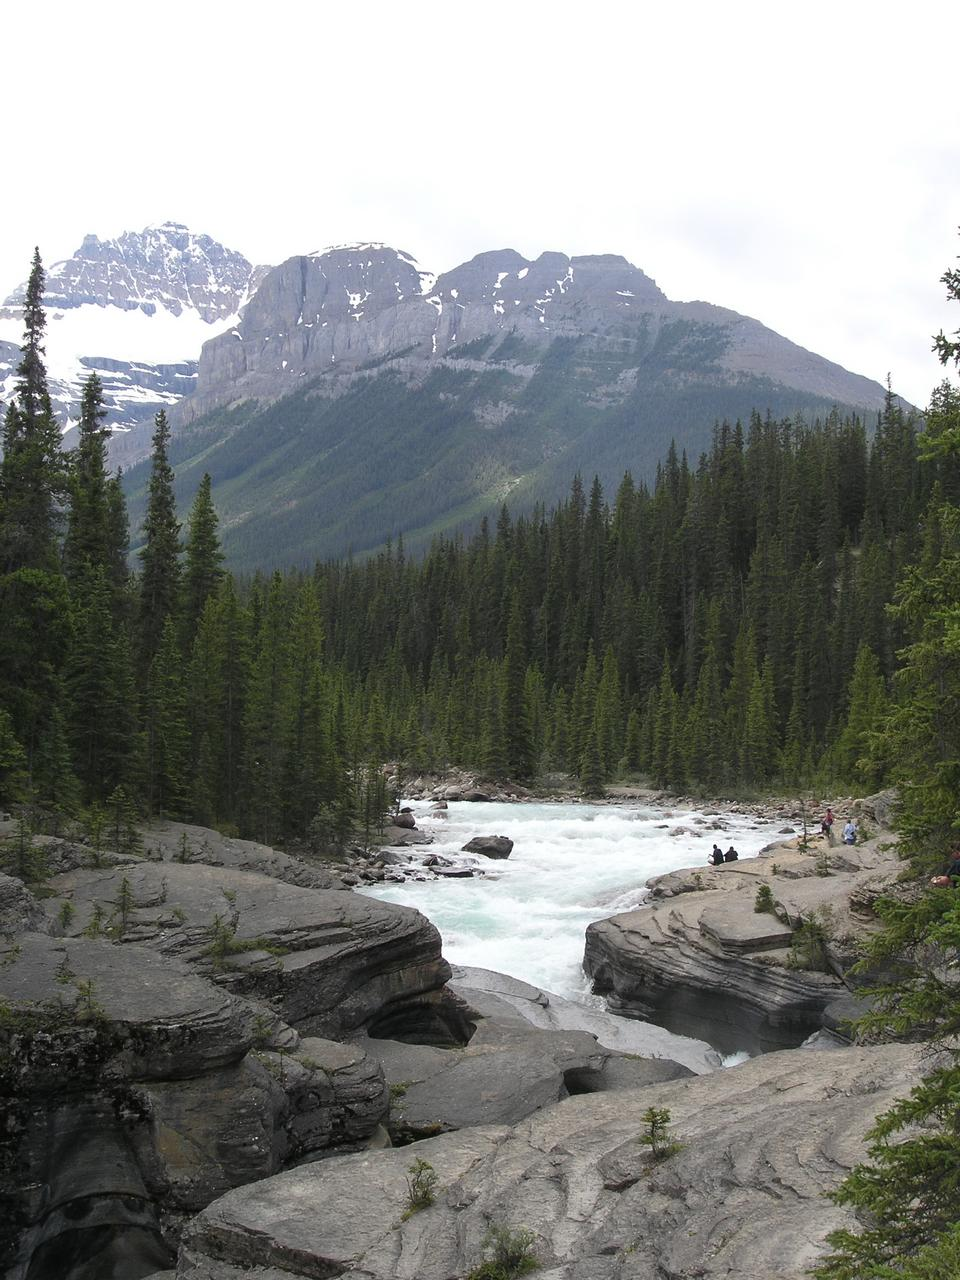 Free Athabaska river Rocky mountains landscape.Jasper National Park